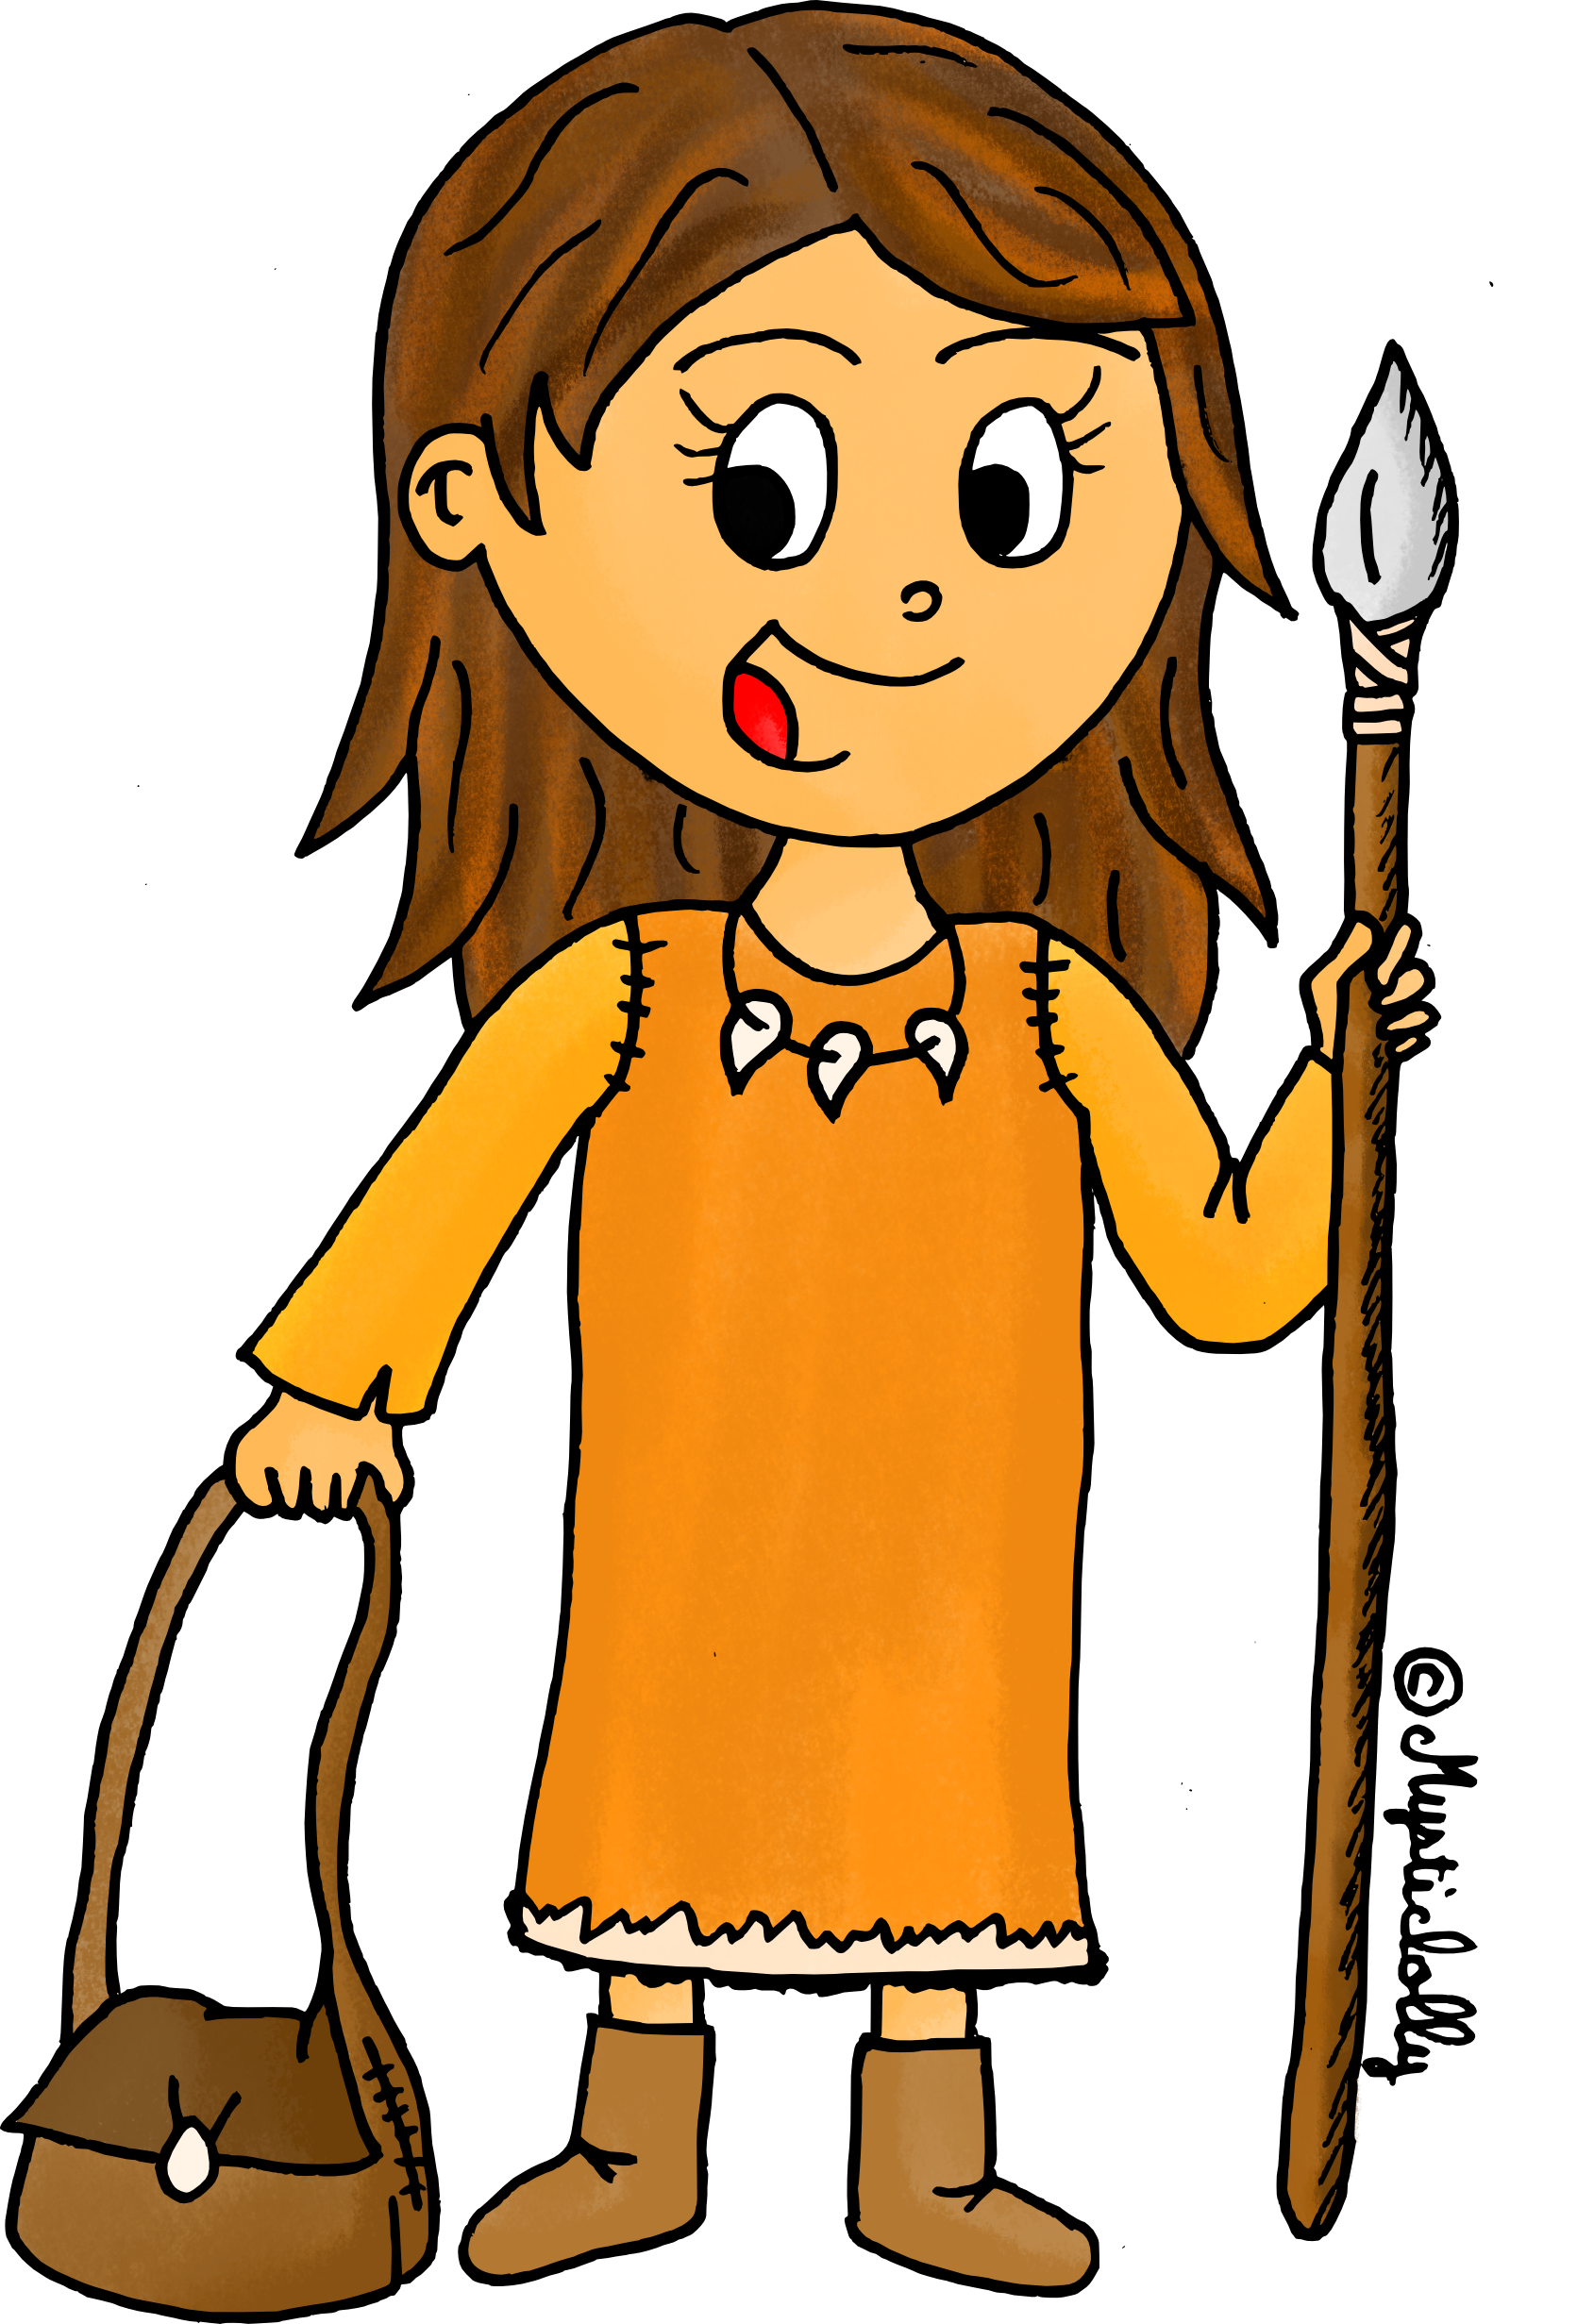 Erreur 404 page introuvable cro magnon school and activities - Garde corps transparent ...